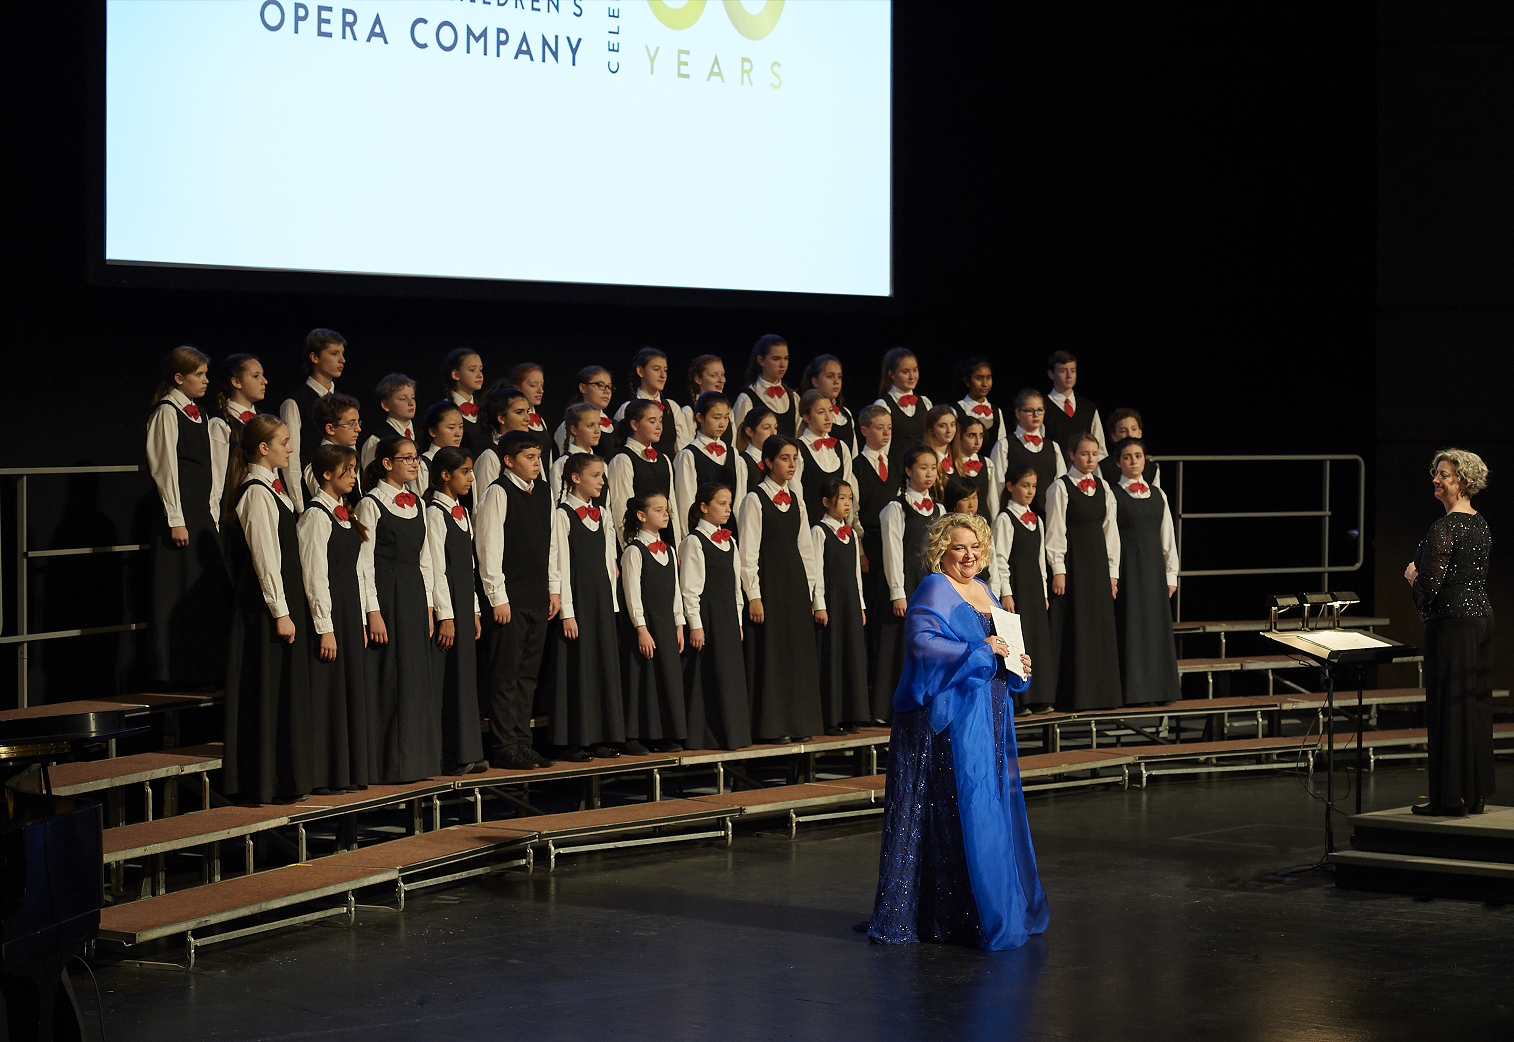 Stage photo of Karina Gauvin and full chorus